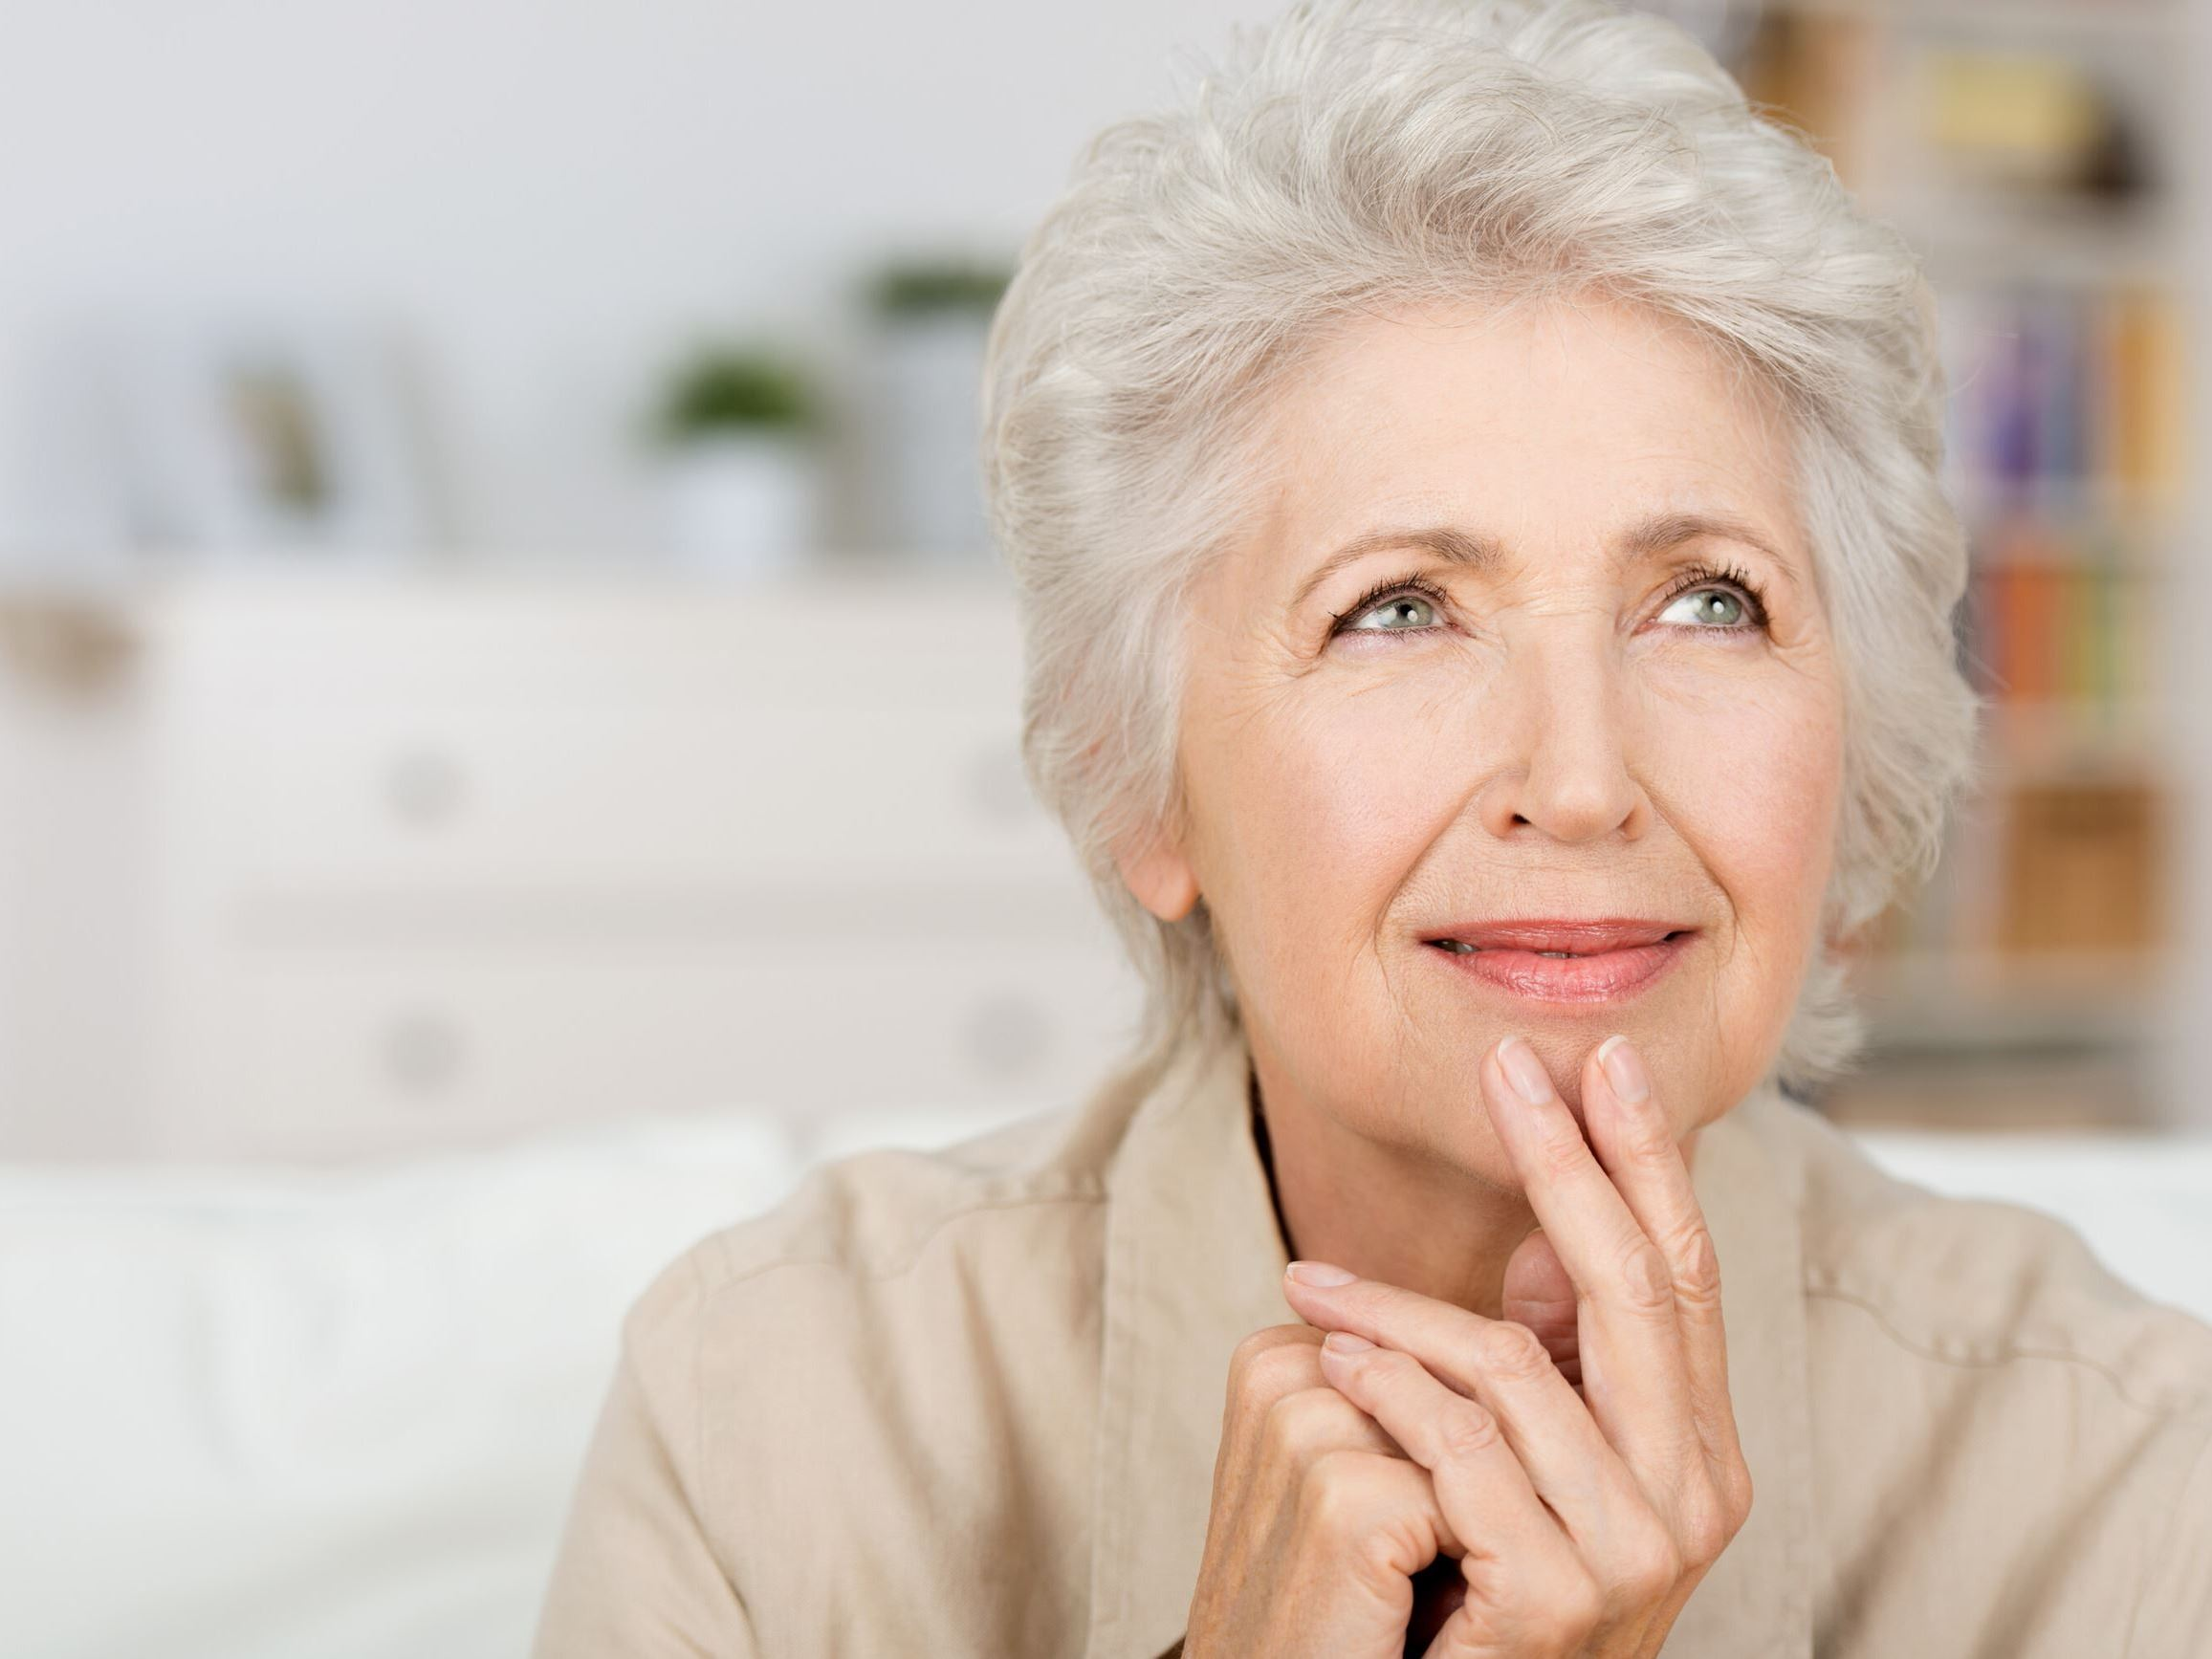 Stock image older woman